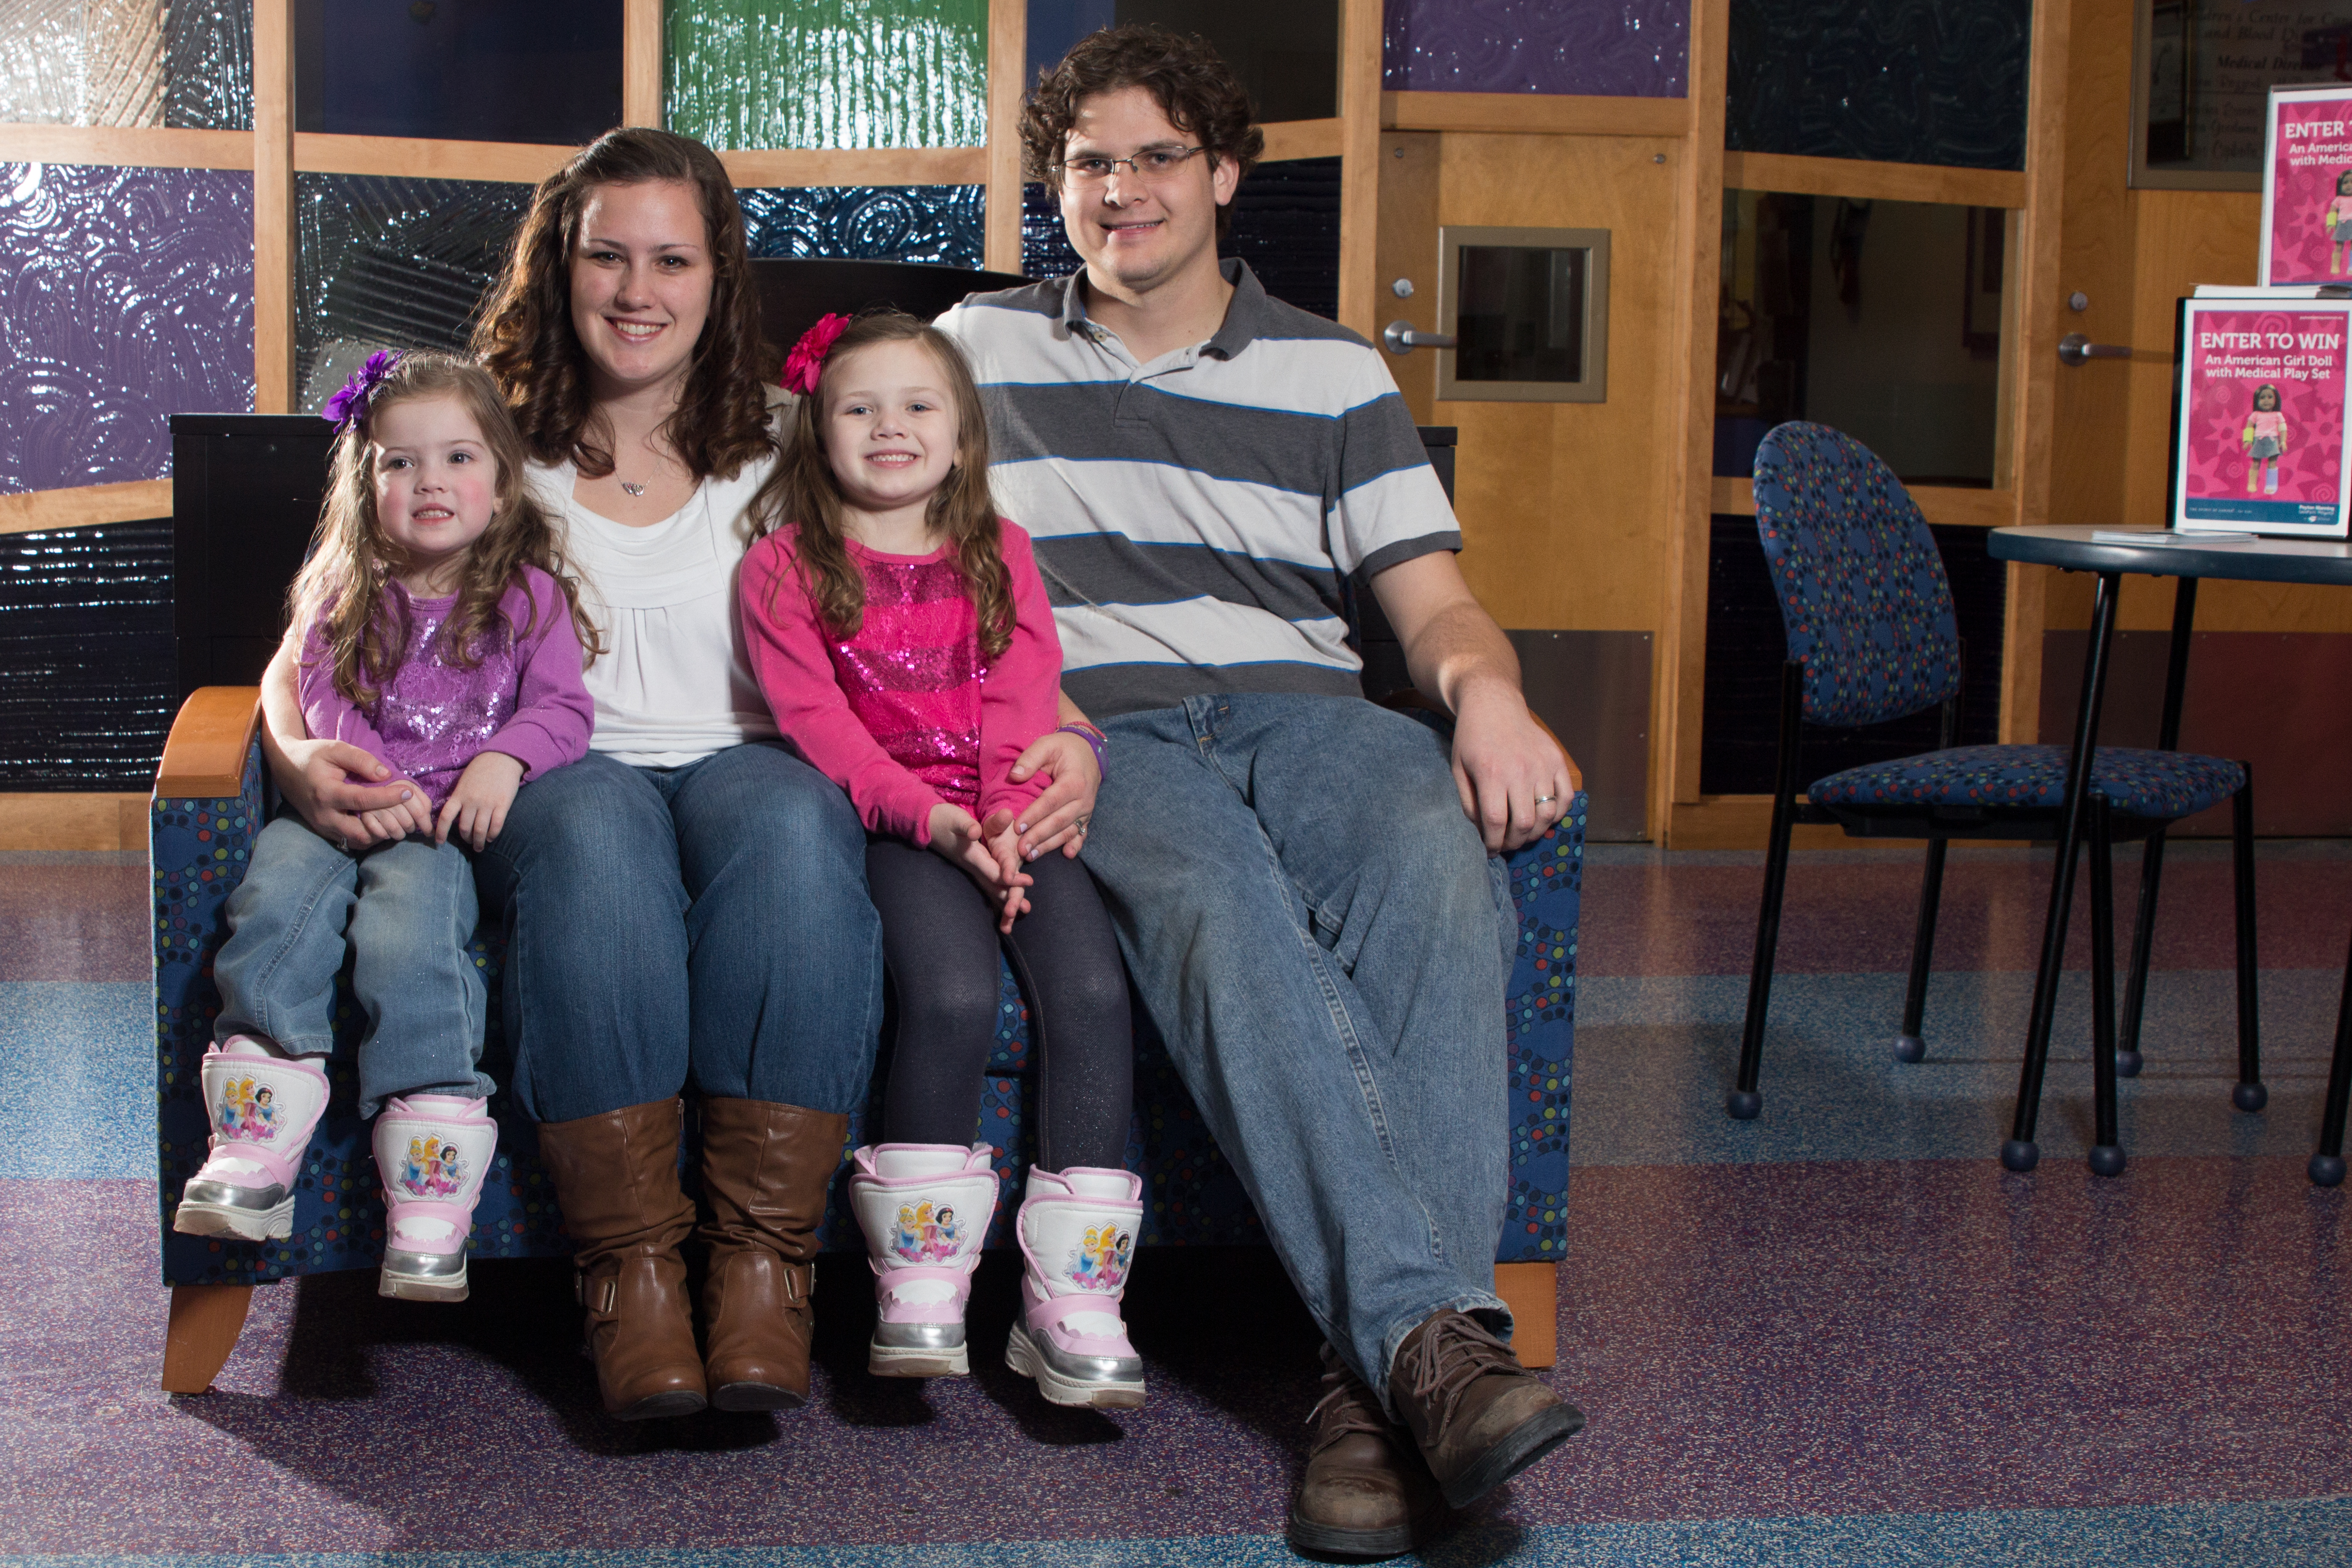 From left, Ally, Courtney, Ellie and John Cooley are a family that helps others. Courtney's daughters have been treated at St.Vincent Peyton Manning Children's Hospital and wish to give back to other children.